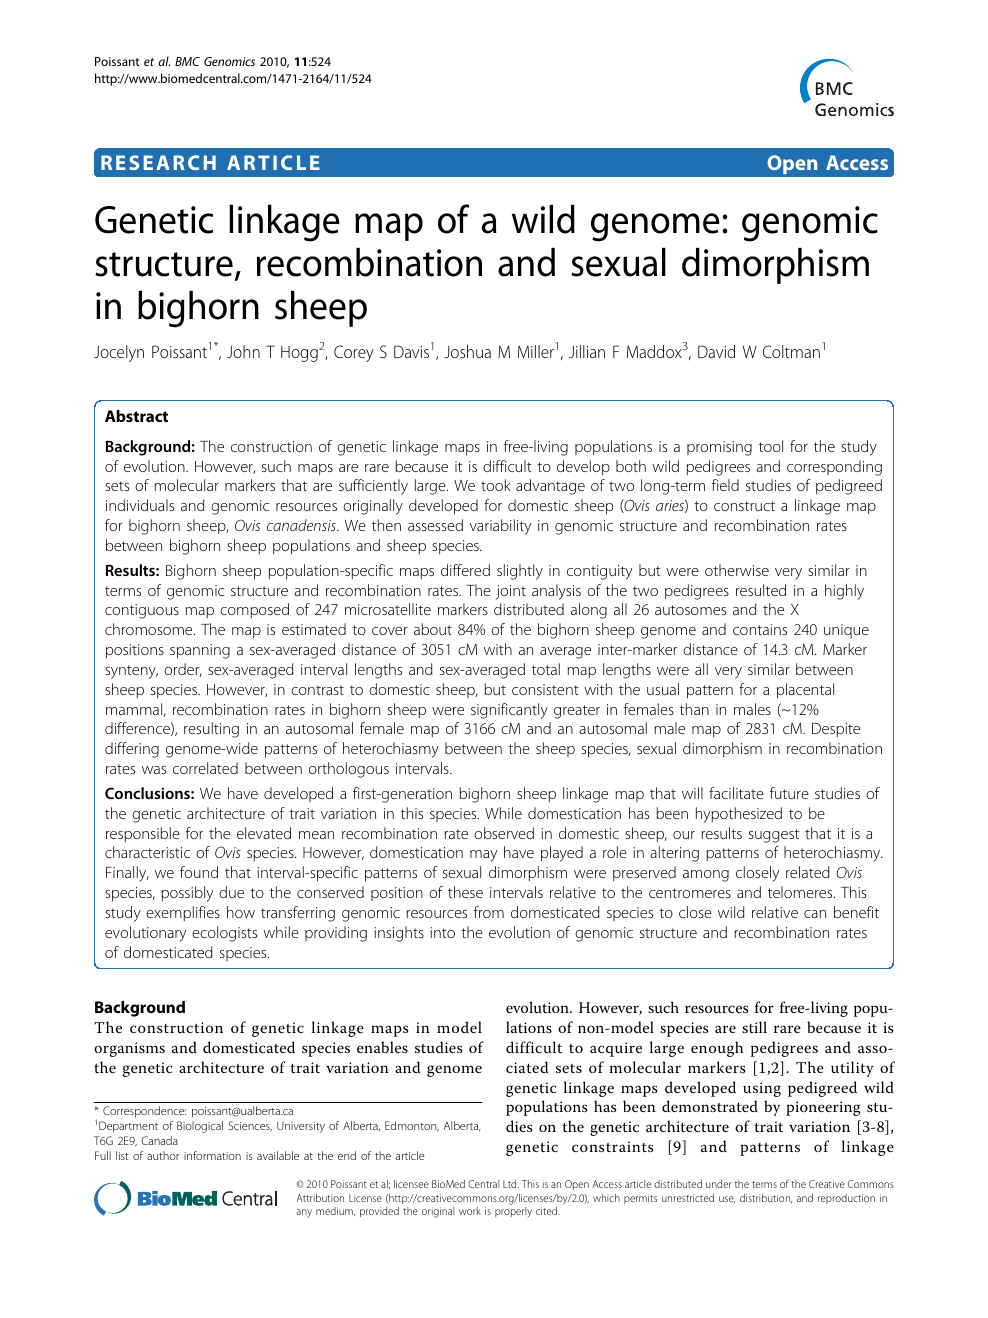 Genetic linkage map of a wild genome: genomic structure ... on wild type, reciprocal cross, pedigree chart, genetic drift, genetic map distance, punnett square, genetic sequence map, drosophila genetic map, genetic atlas, genetic heredity map, genetic migration map, genetic screen, monohybrid cross, genetic combination, genetic chart, omim gene map, genetic map of mexico, cell cycle map, genetic diversity map, cancer map, genetic gene map, human genetic map, genetic code map, dihybrid cross, test cross, fruit fly genetic map, genetic mapping, genetic family map,